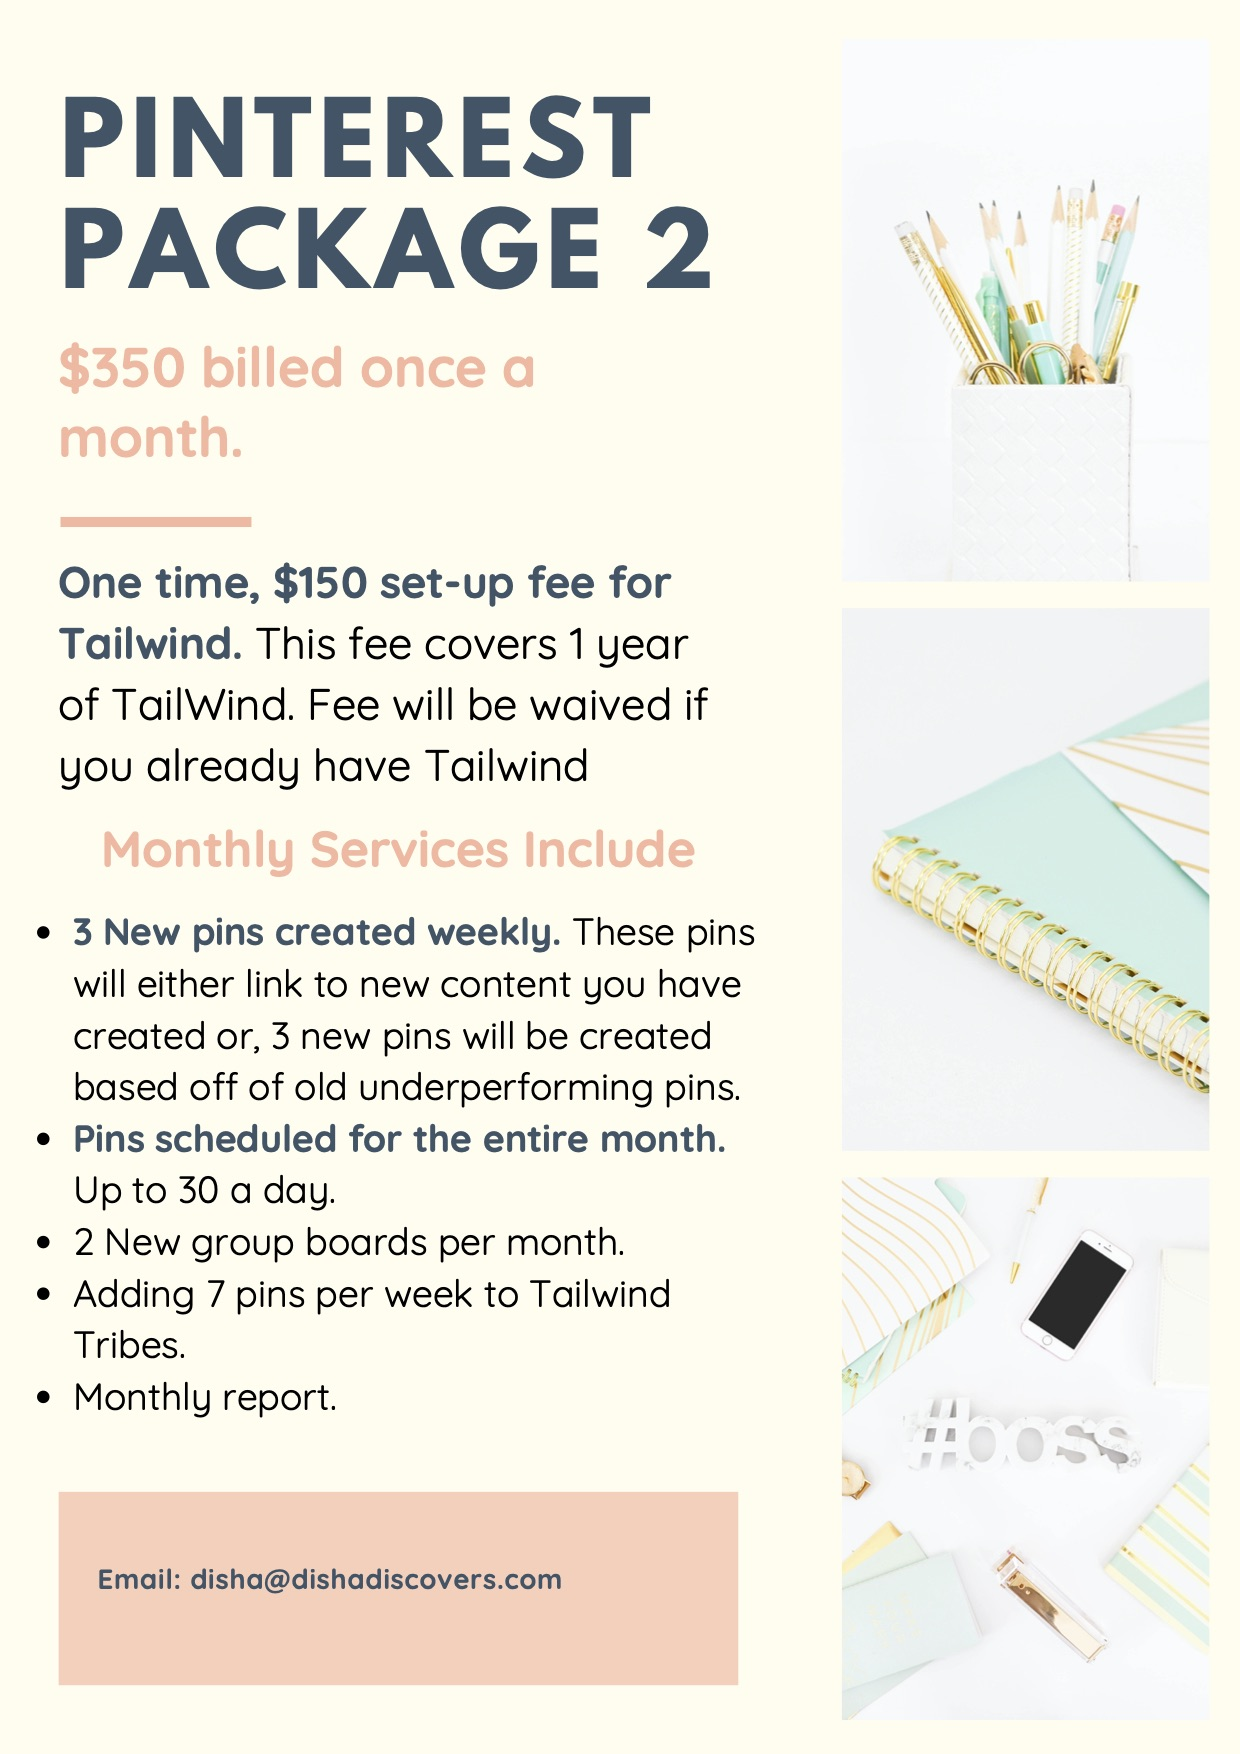 Pinterest Package 2